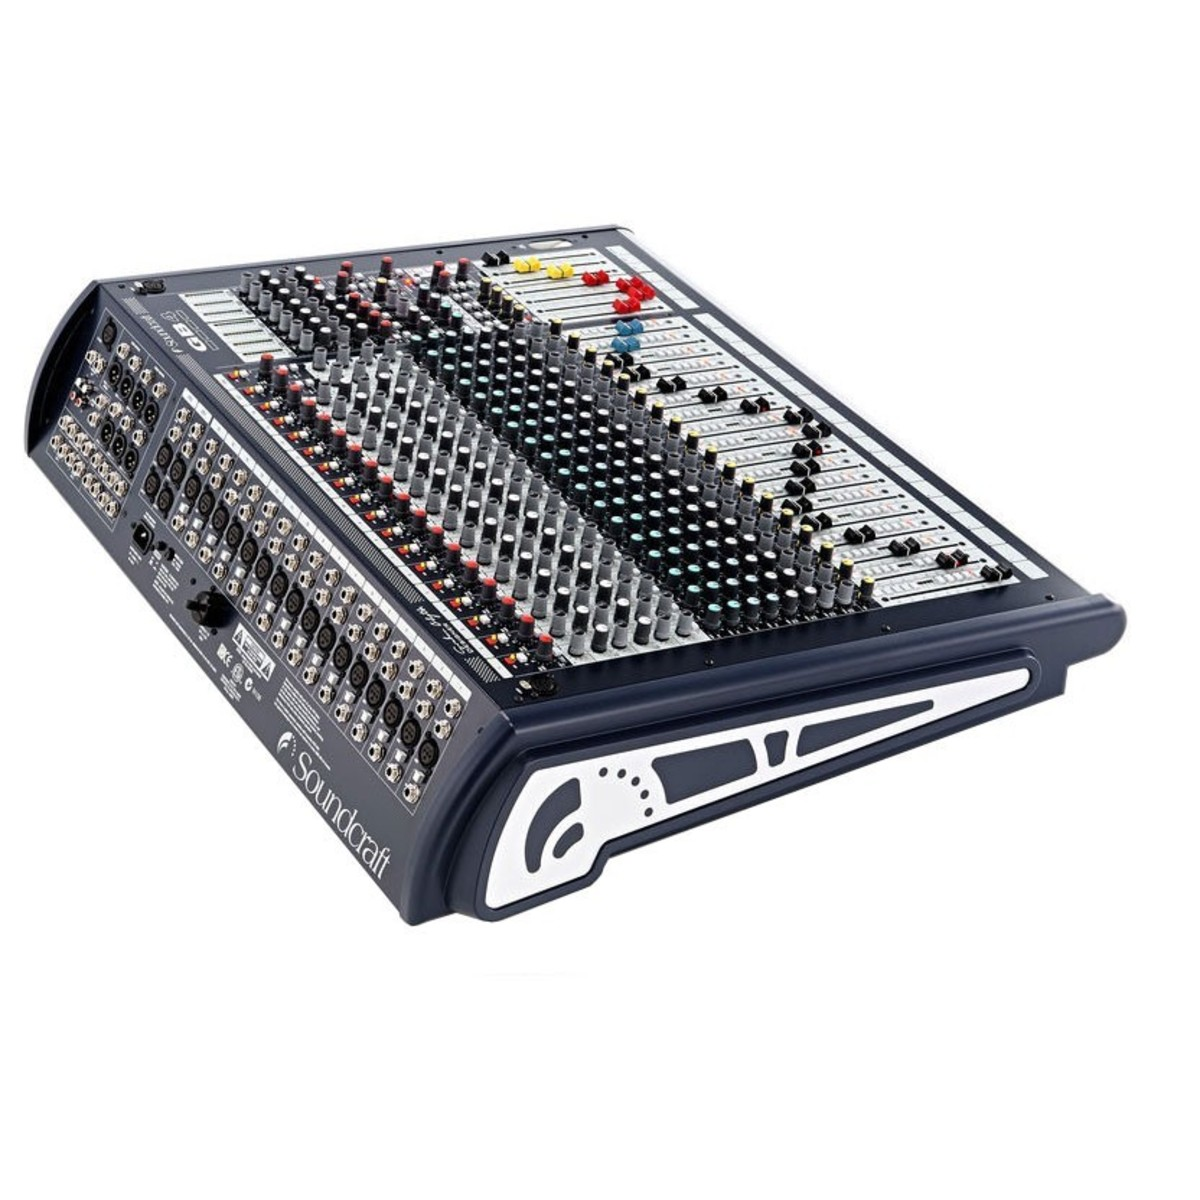 Soundcraft Gb4 16 16 Channel Mixer At Gear4music